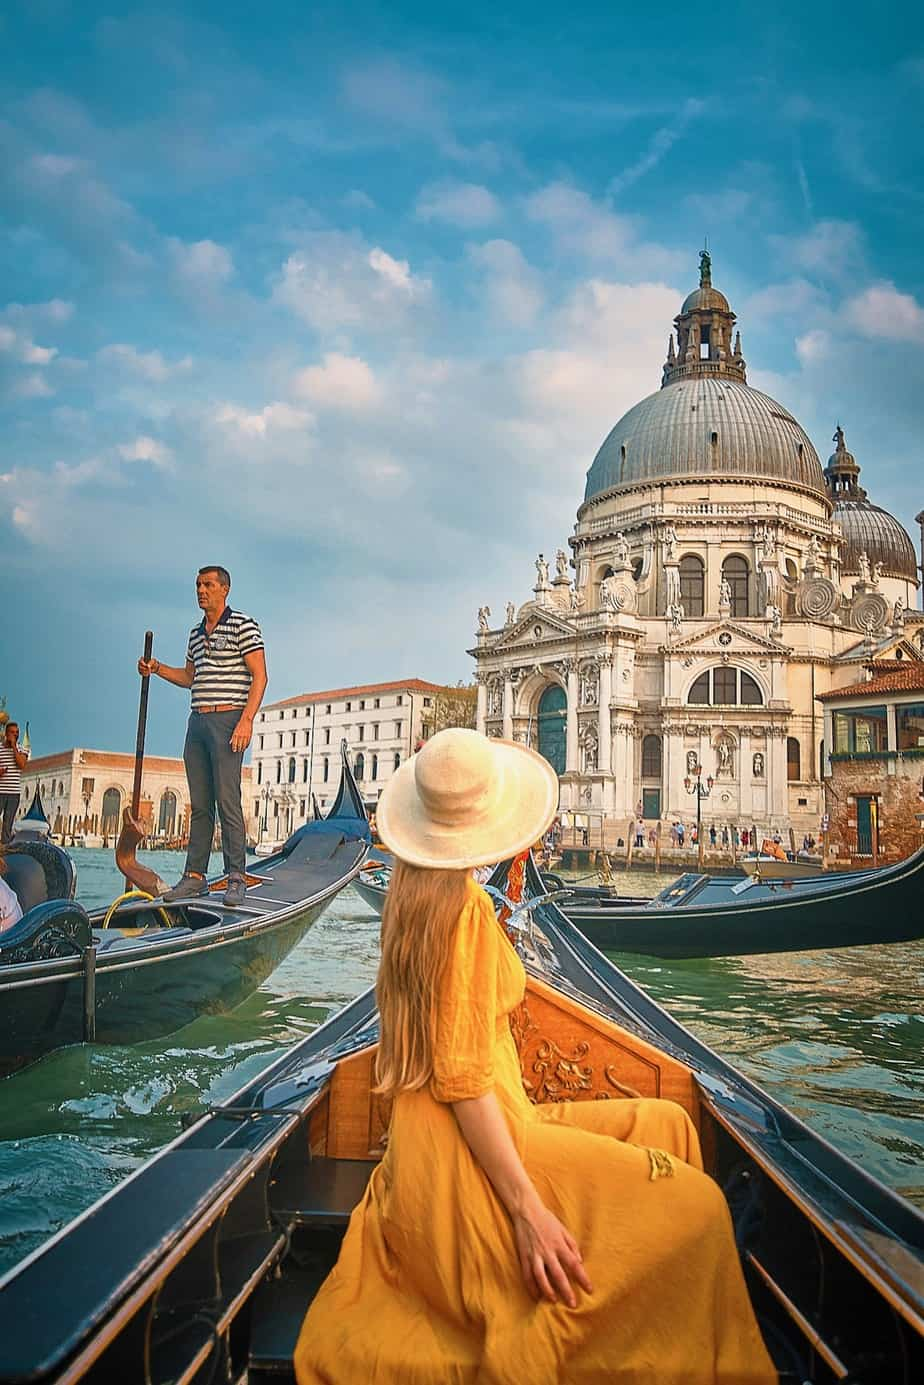 Shooting from a Gondola is the most Instagrammable spot in Venice! | Best venice photo spots | Gondola in Venice for Instagram | cute Venice photo ideas | prettiest spots in Venice | Gondola ride in Venice | taking a Gondola ride in Italy | where to take photos in Venice Italy